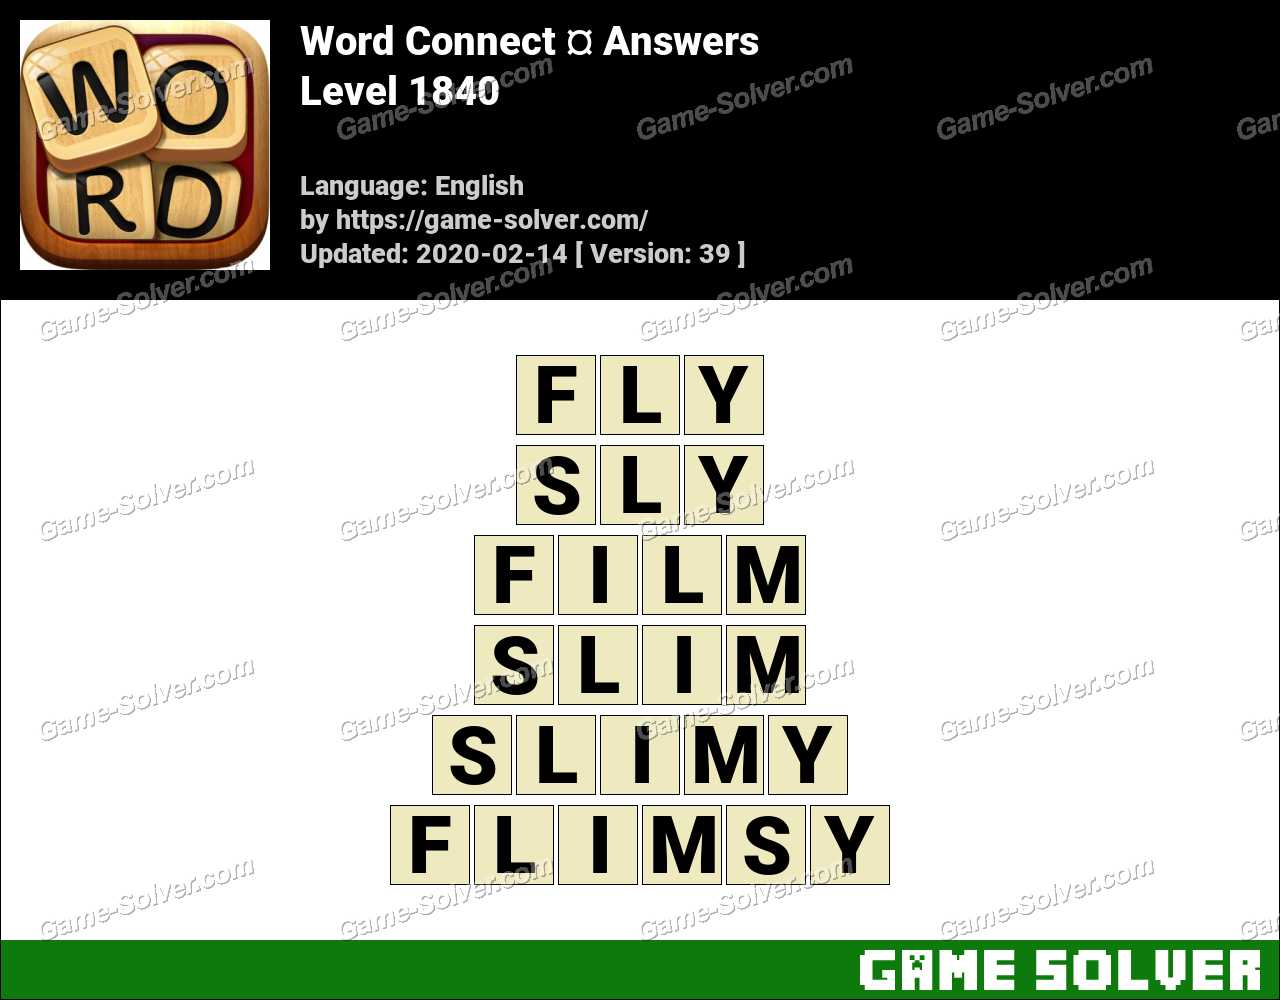 Word Connect Level 1840 Answers